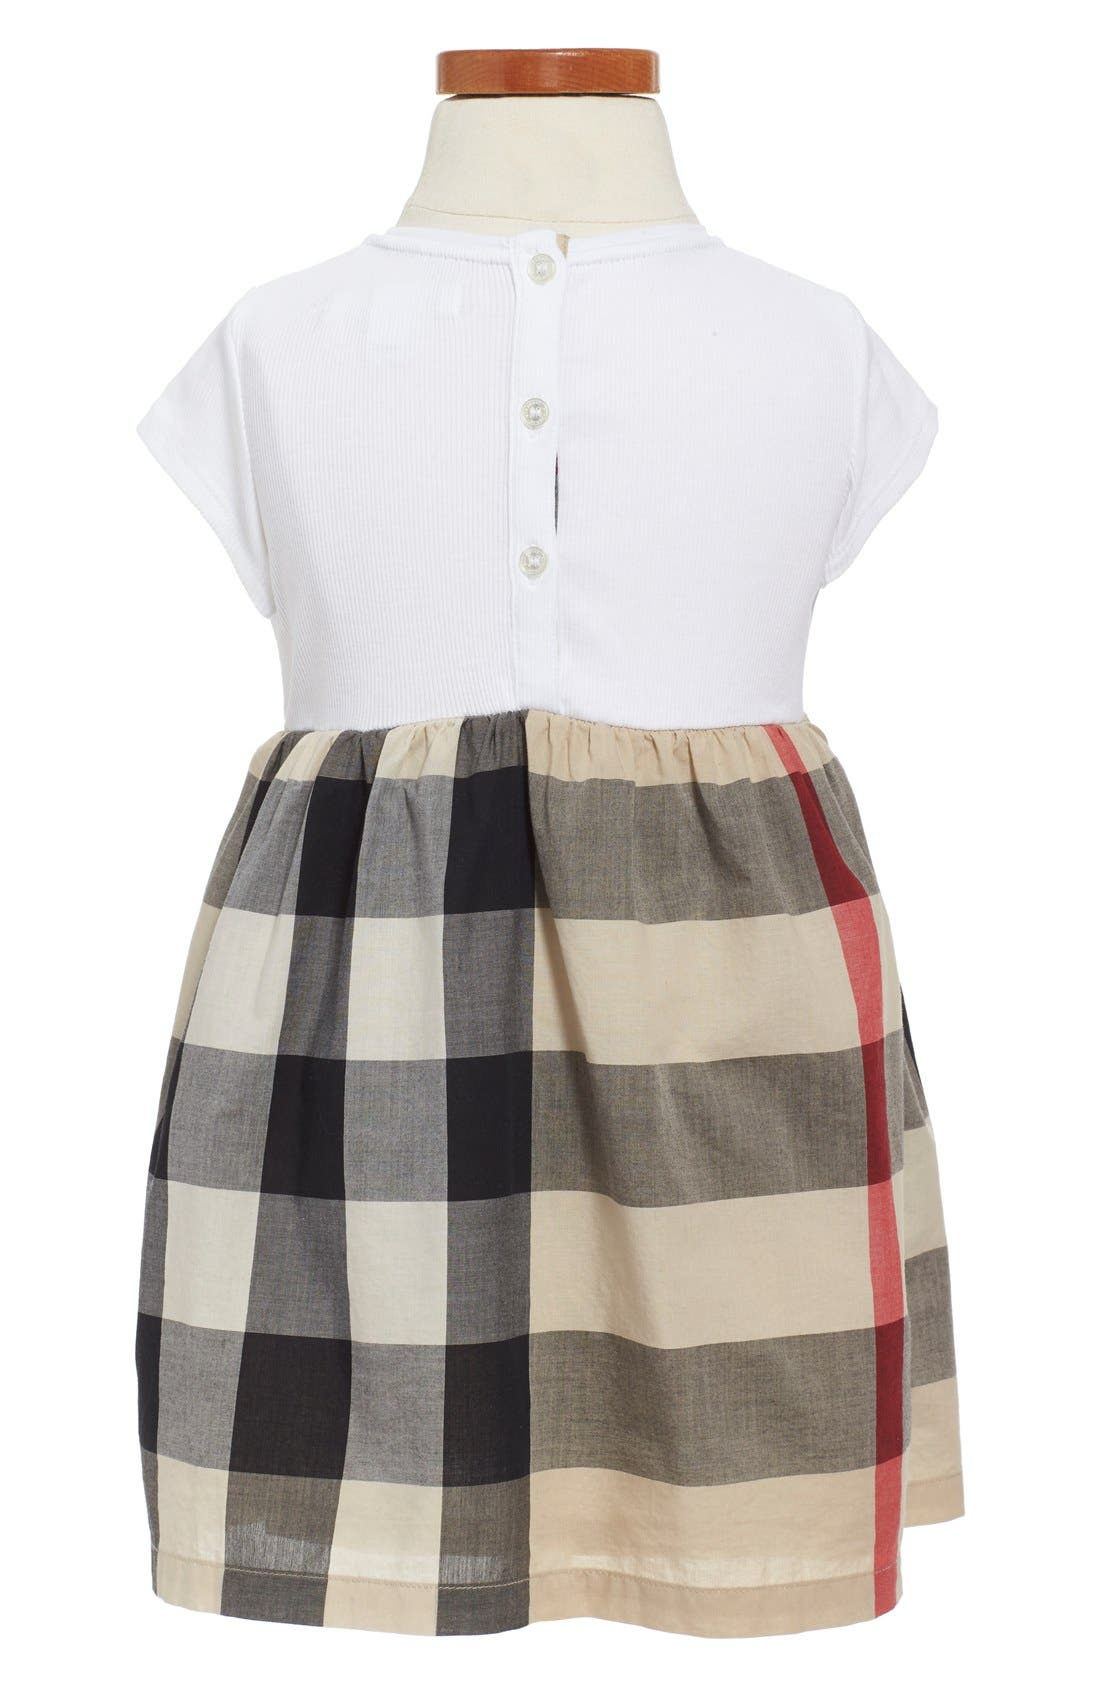 Alternate Image 2  - Burberry 'Mini Rosey' Check Cotton Dress (Toddler Girls)